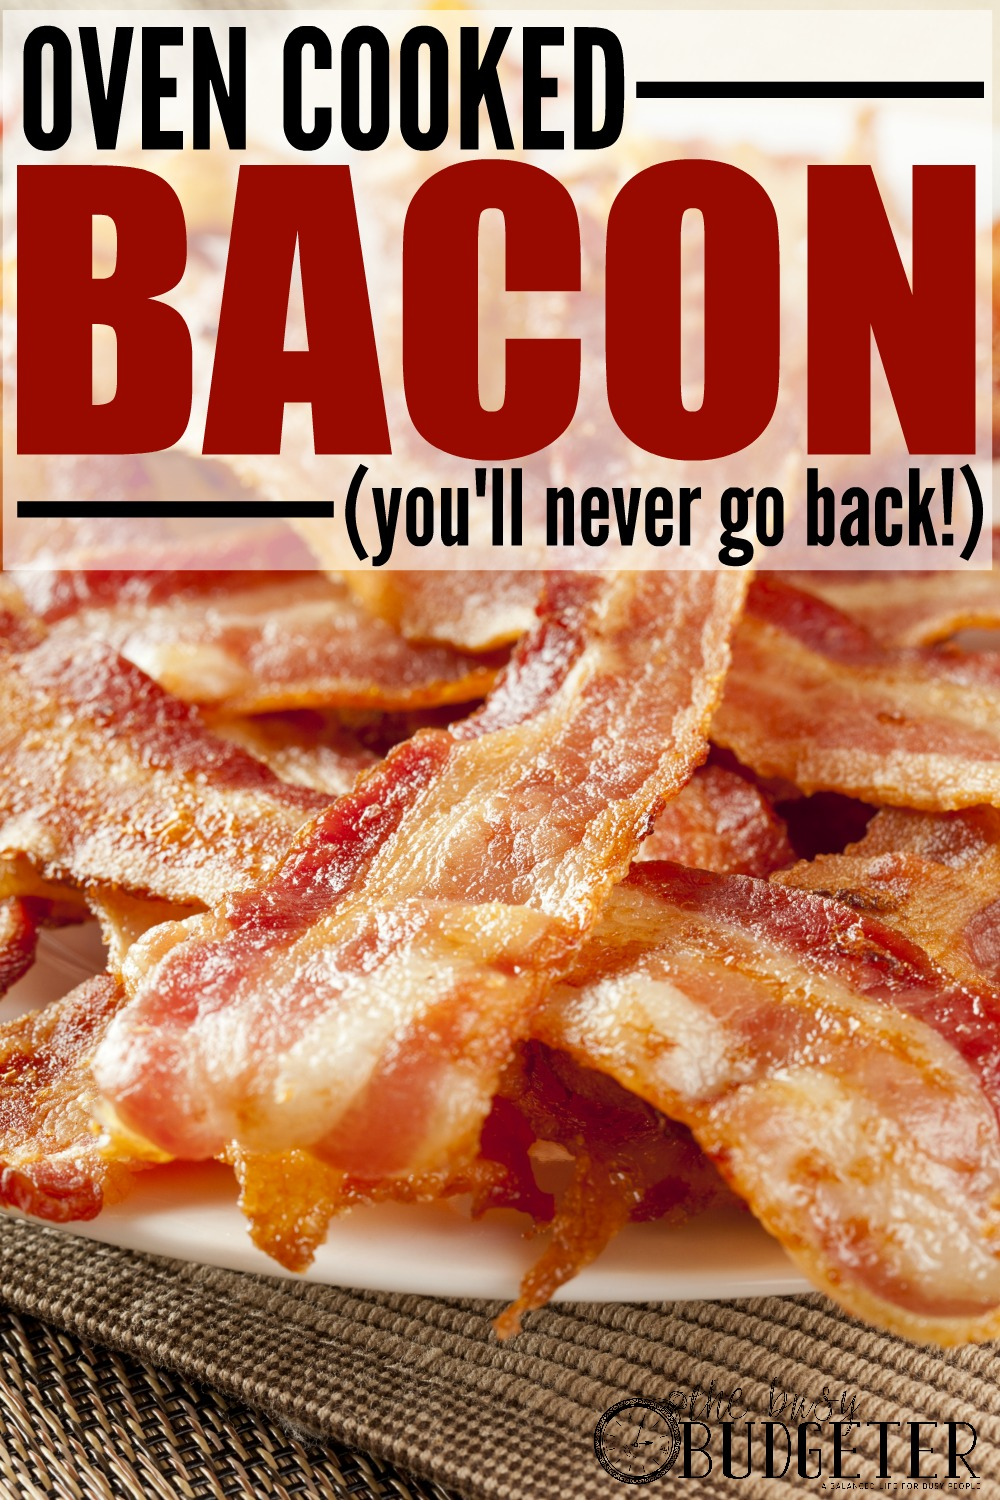 How to Batch Cook and Freeze Bacon. Omg, Completely agree! My cousin taught me this trick and I couldn't believe how easy it was to make a giant batch of bacon. It's easier to do this than just to make a few slices for breakfast! We keep a gallon bag in the freezer now and add it to EVERYTHING. Soups, salads, breakfast... easy oven bacon means happy husband. :)